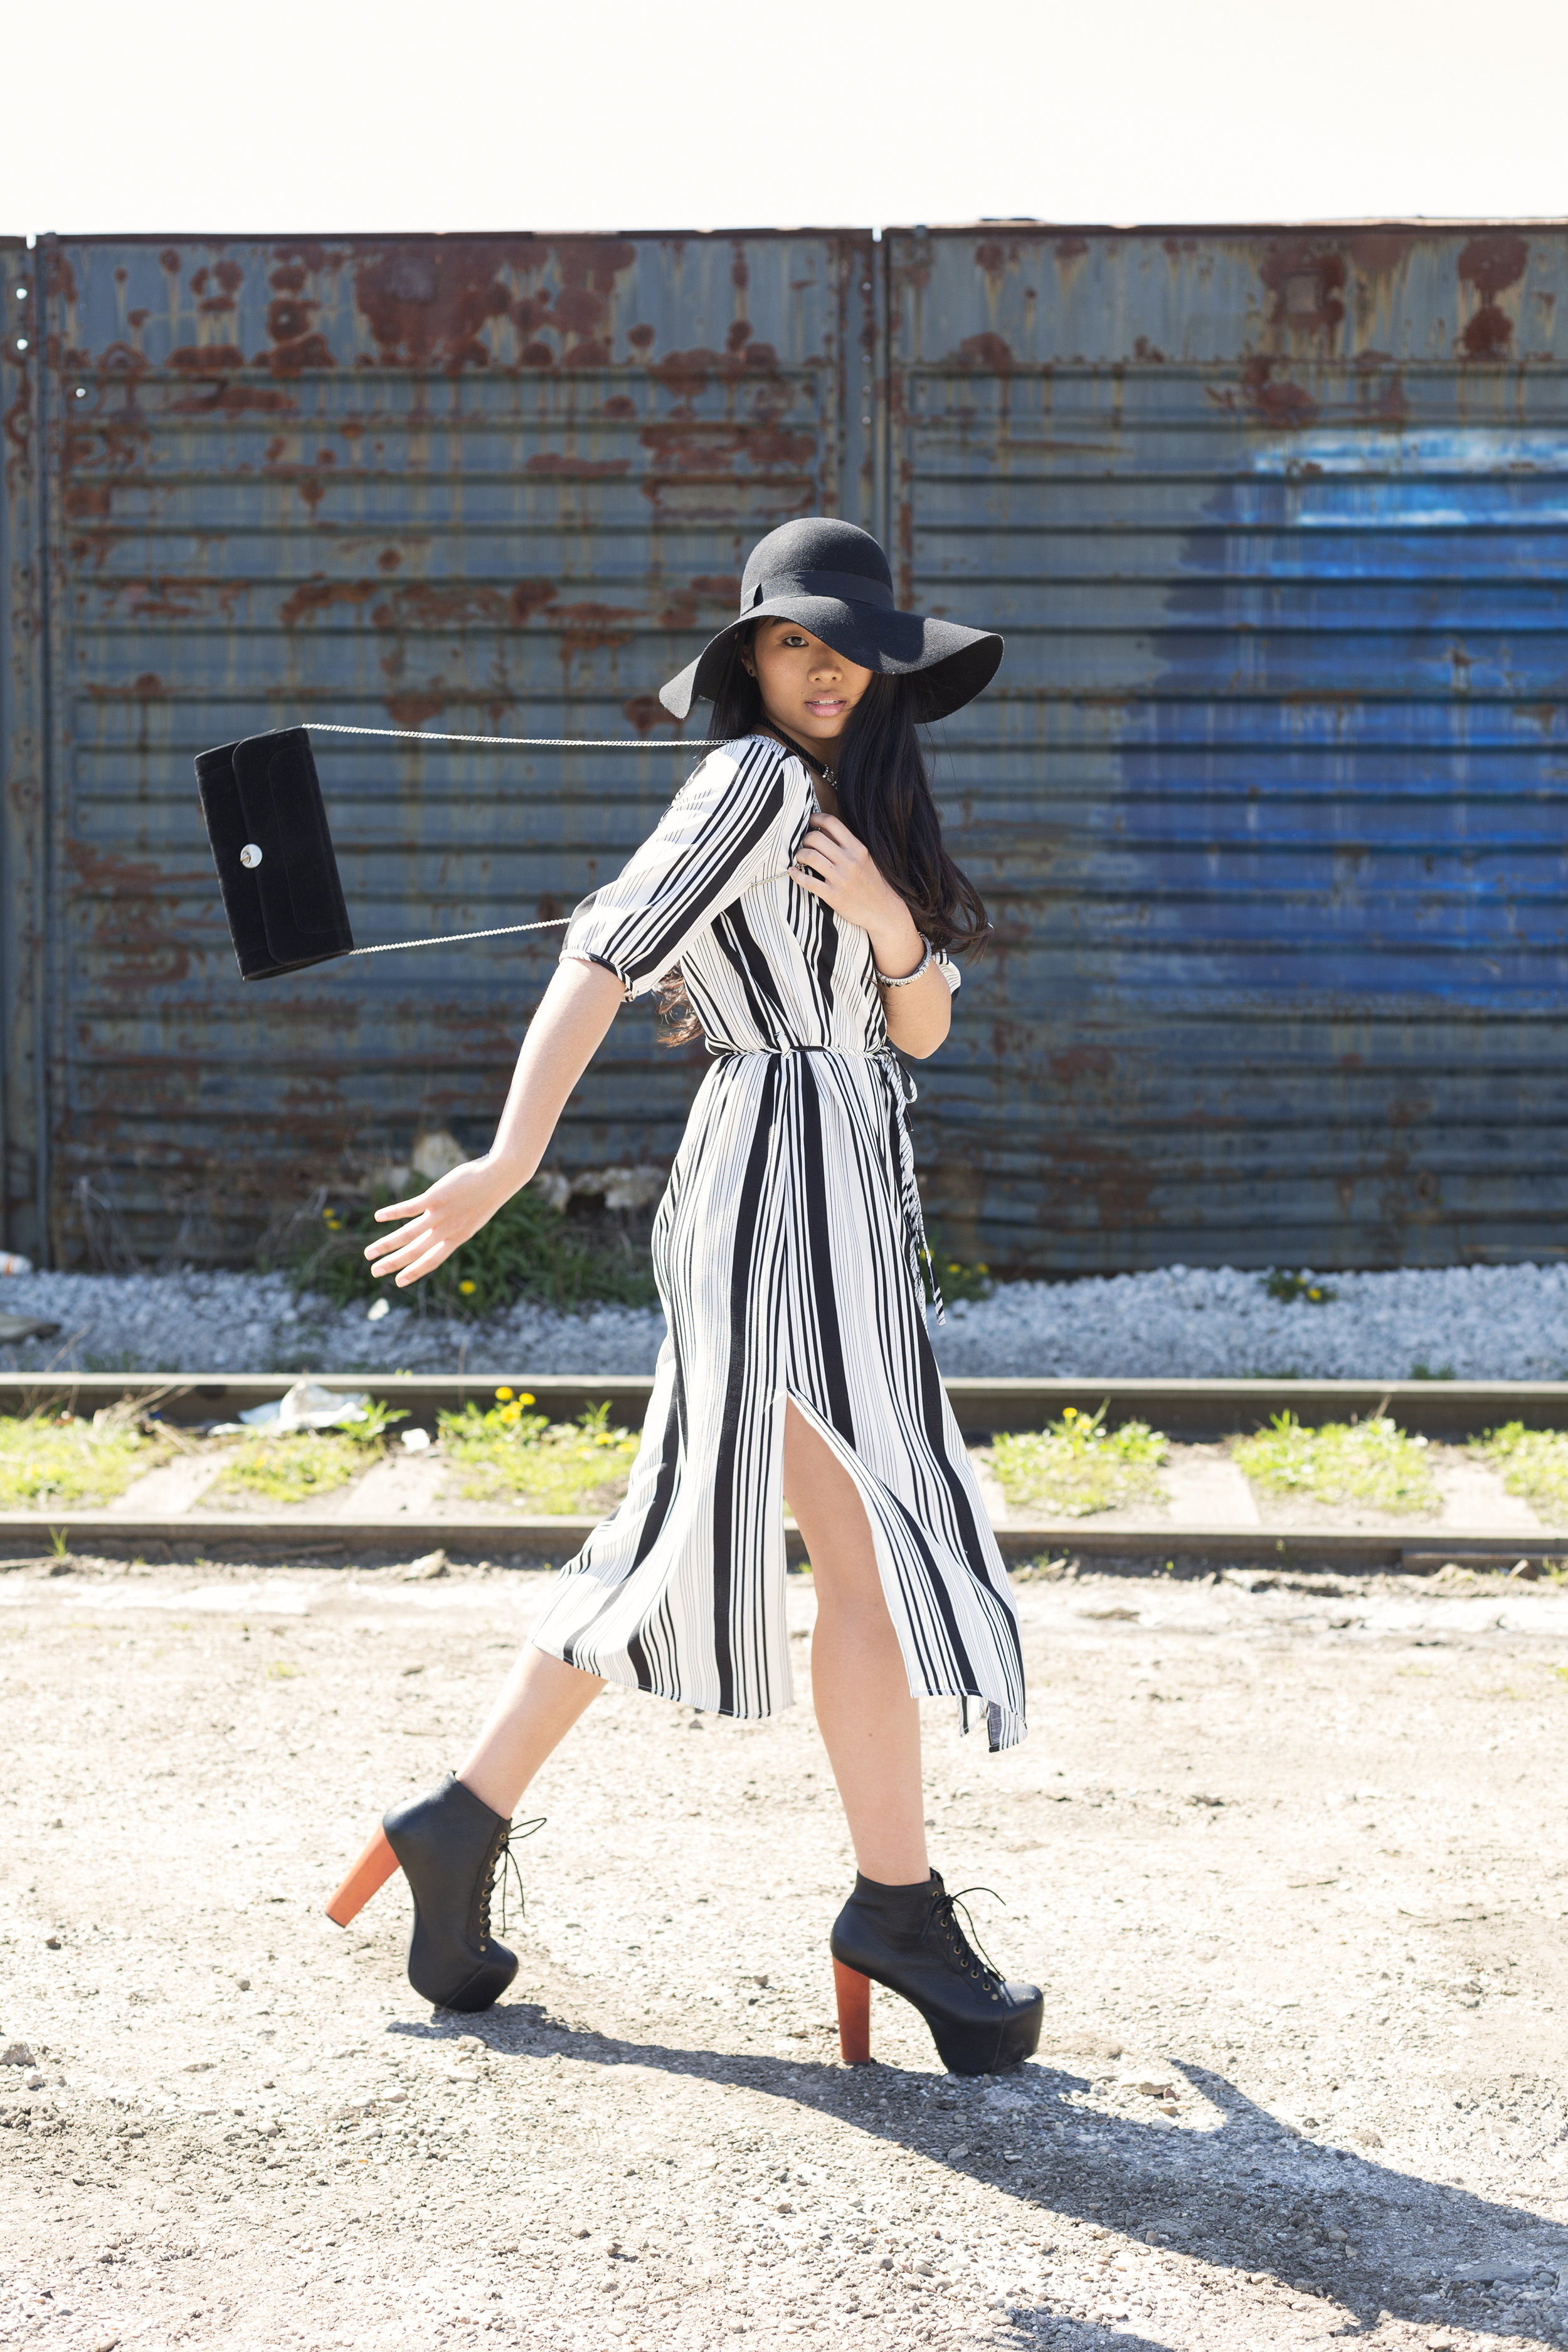 Keep cool with side slits and light-weight dresses